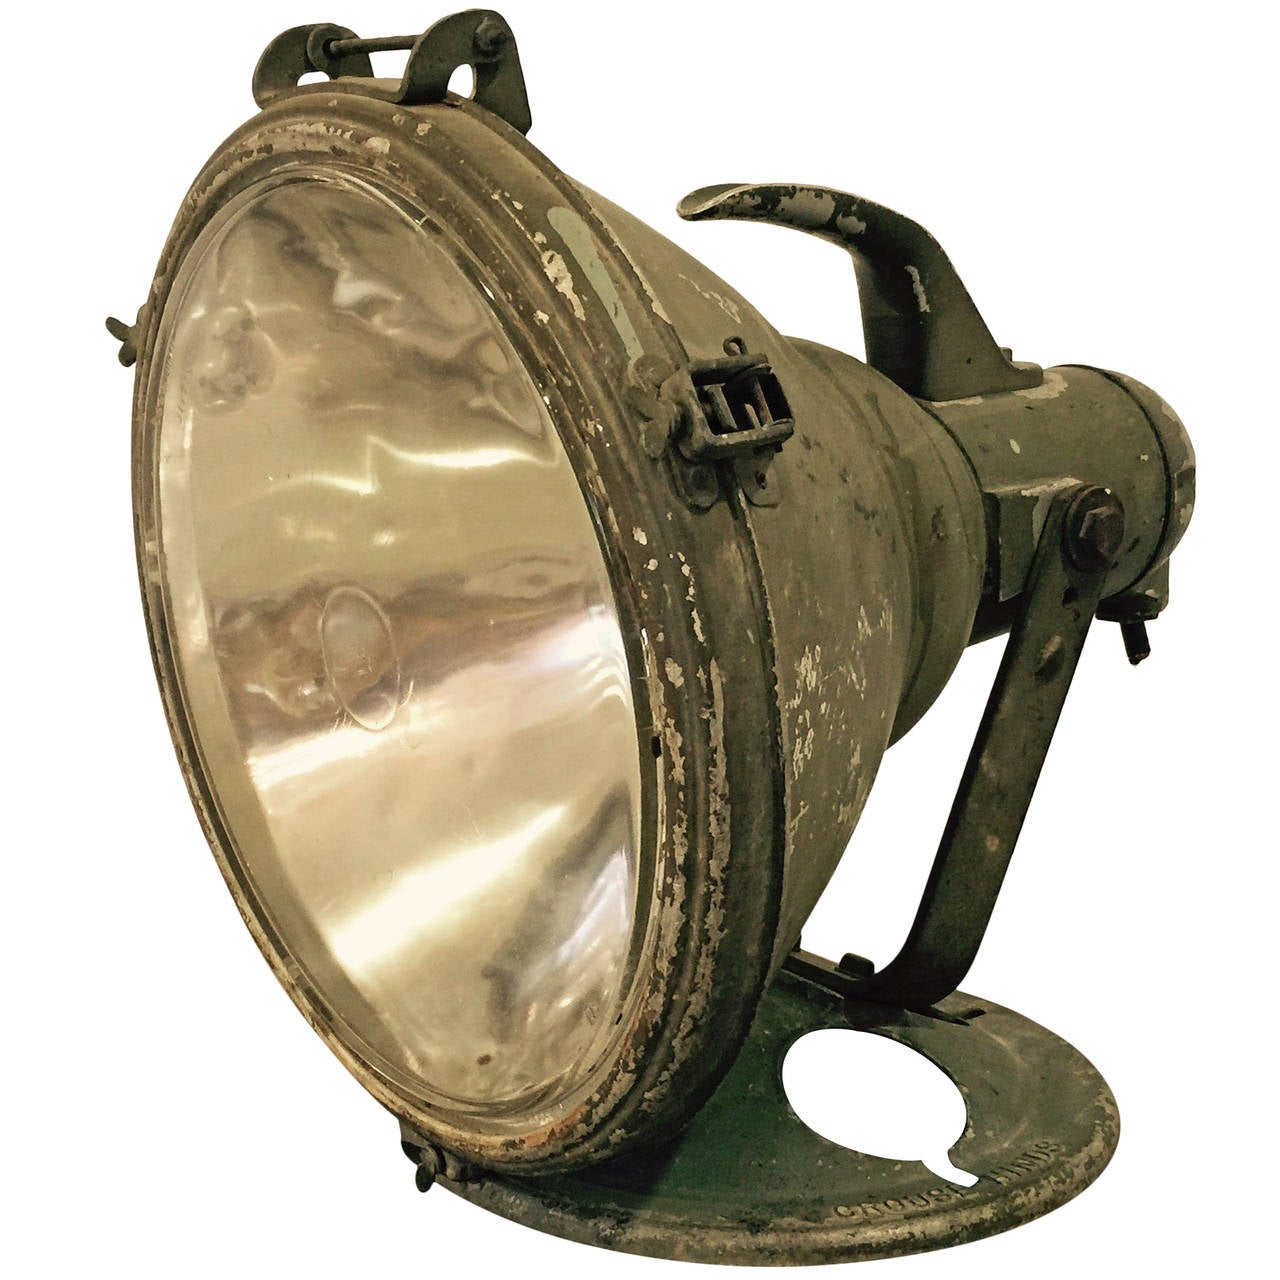 Vintage Spotlight By Crouse Hinds For Sale At 1stdibs